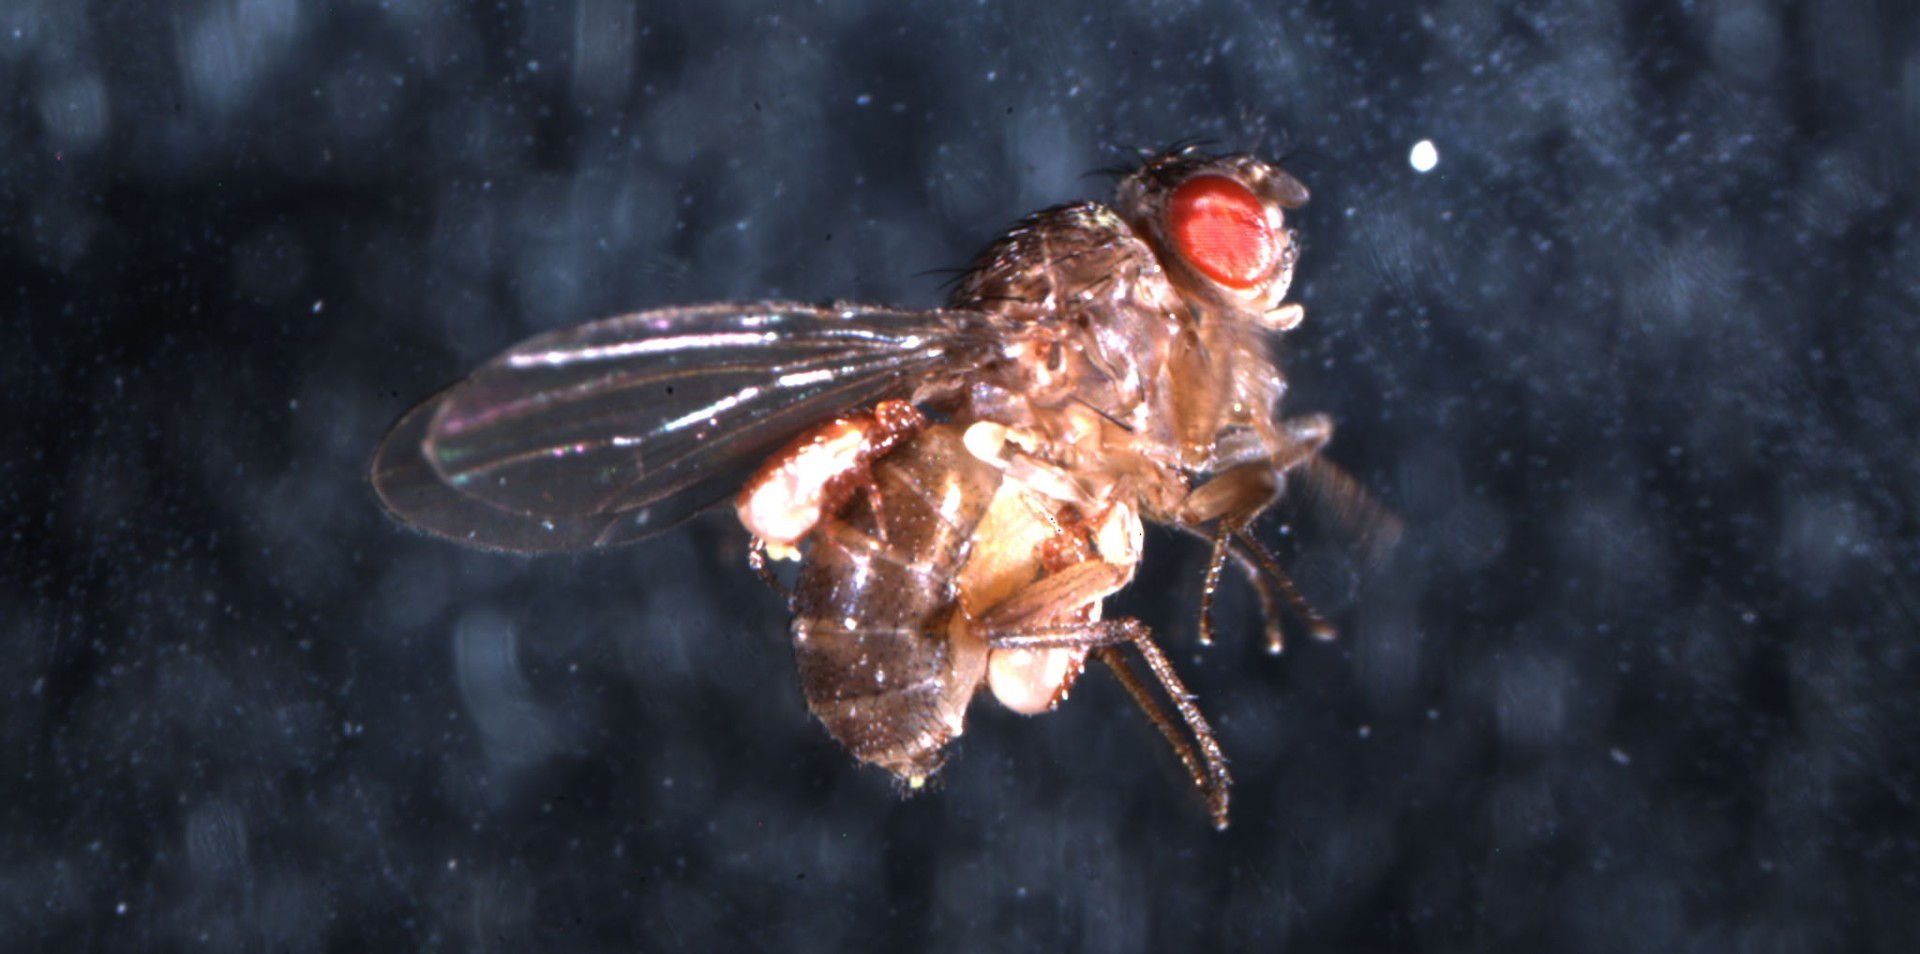 Fruit flies have more to fear than just infection by parasitic mites, like the one pictured here, according to new U of A research. (Photo: courtesy of Lien Luong)